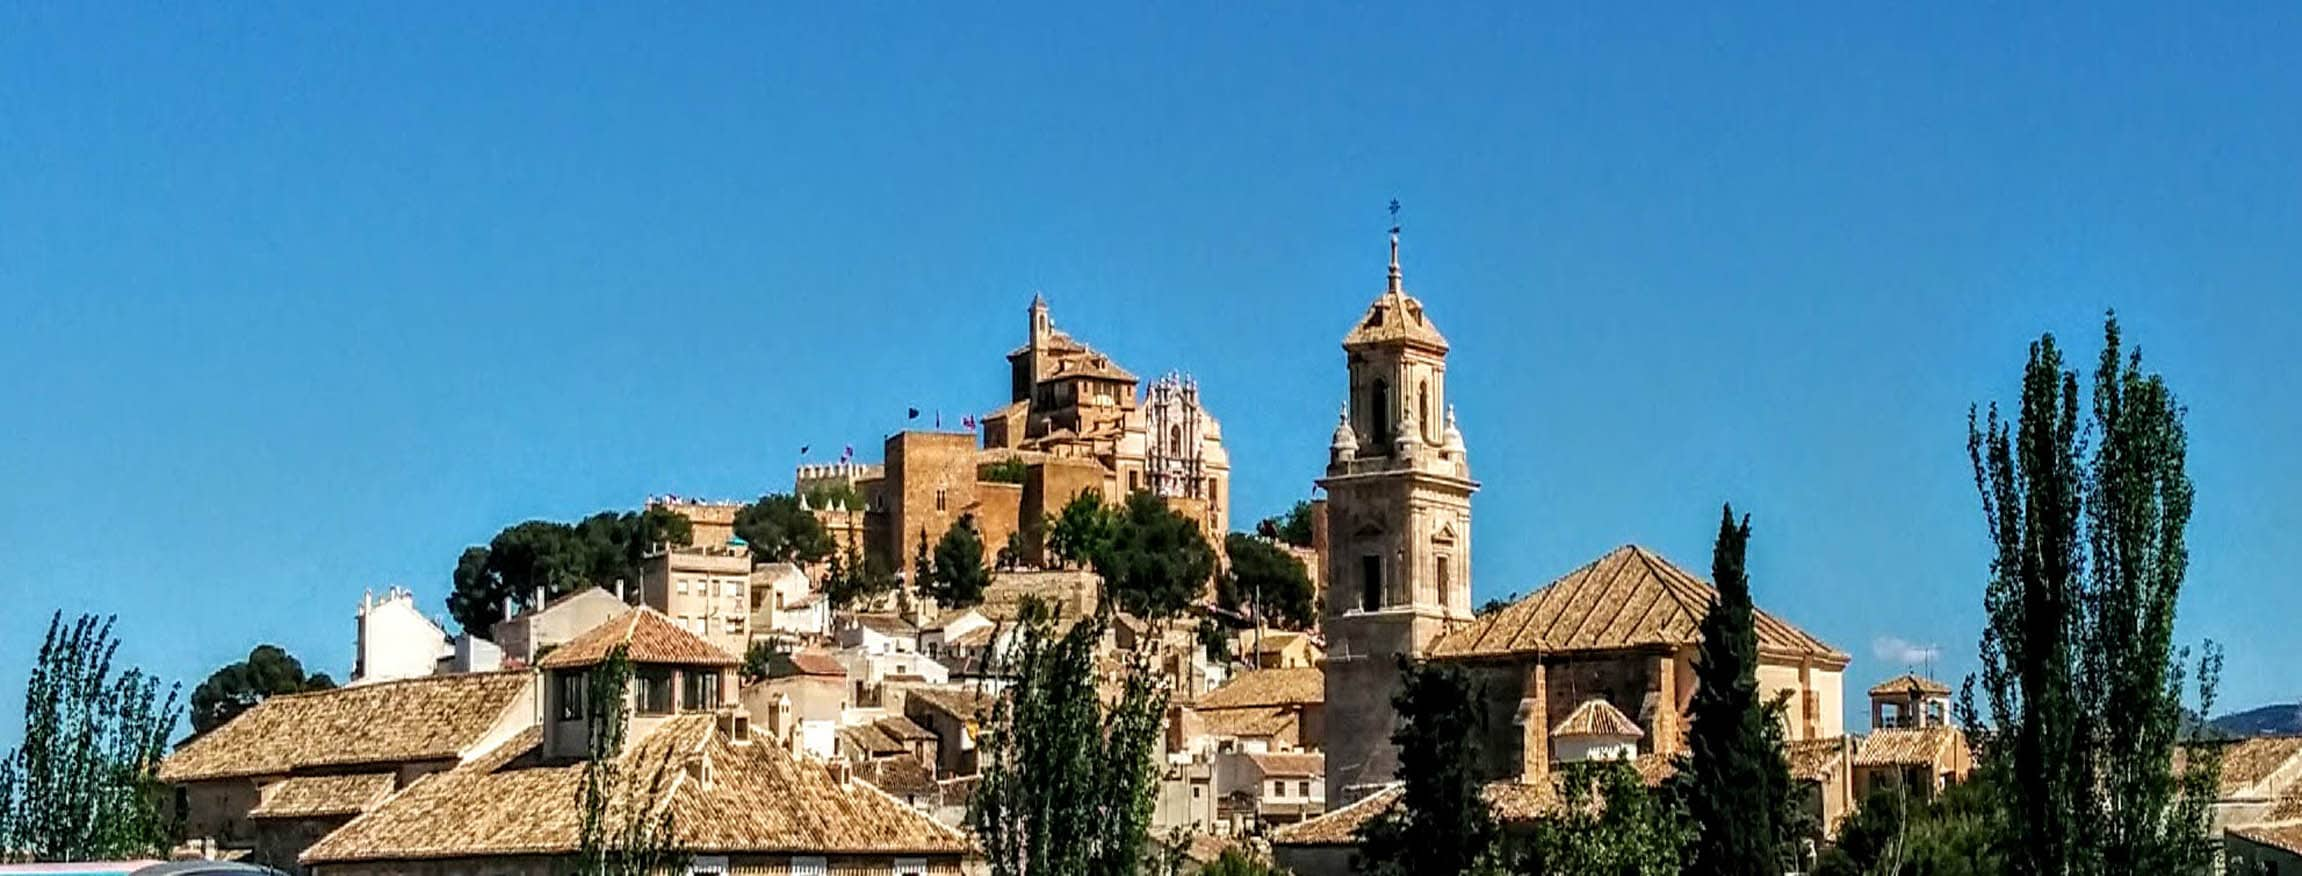 castillo in Caravaca de la Cruz